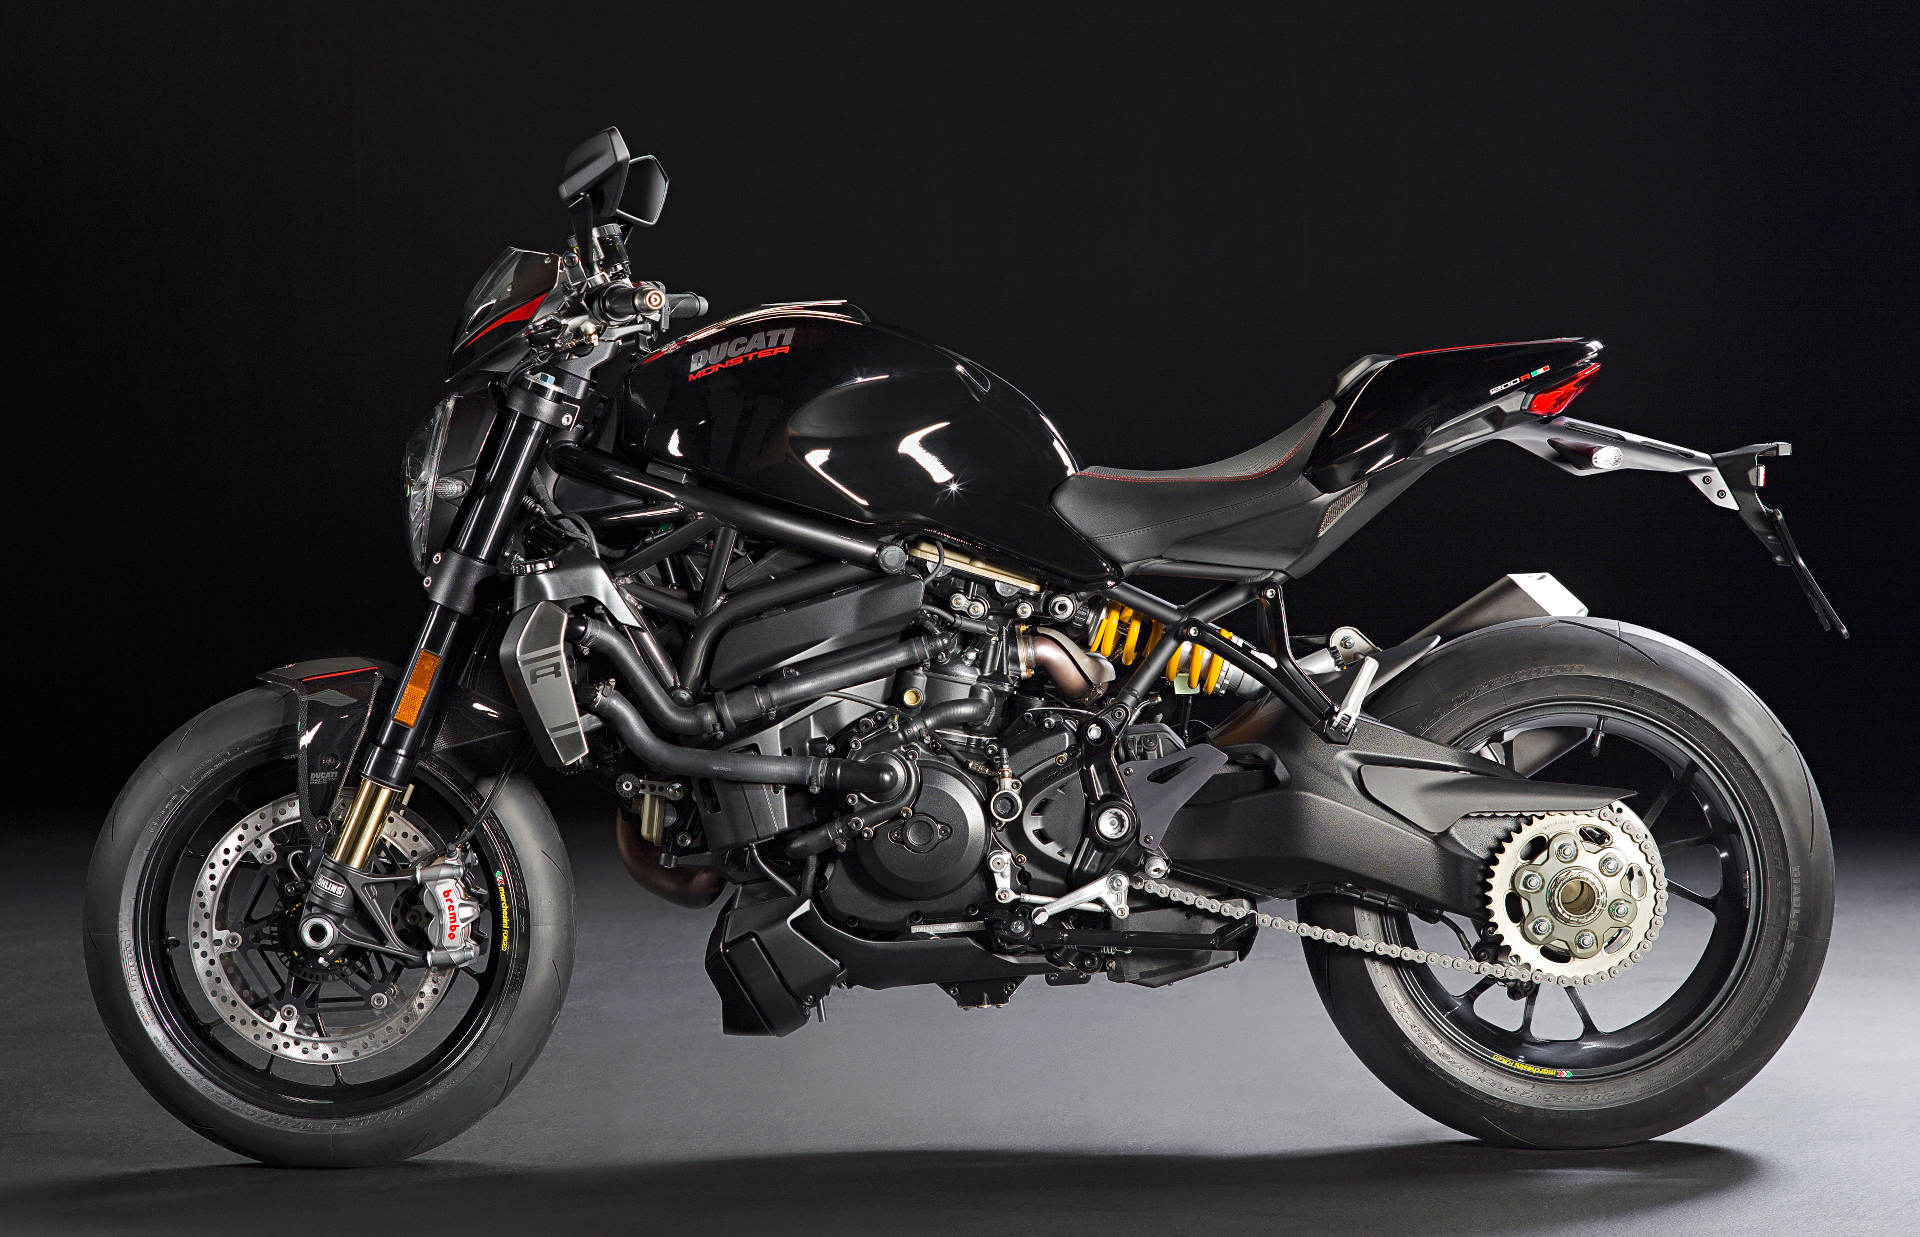 ducati introduces 2016 monster 1200 r motorcycle news editorials. Black Bedroom Furniture Sets. Home Design Ideas